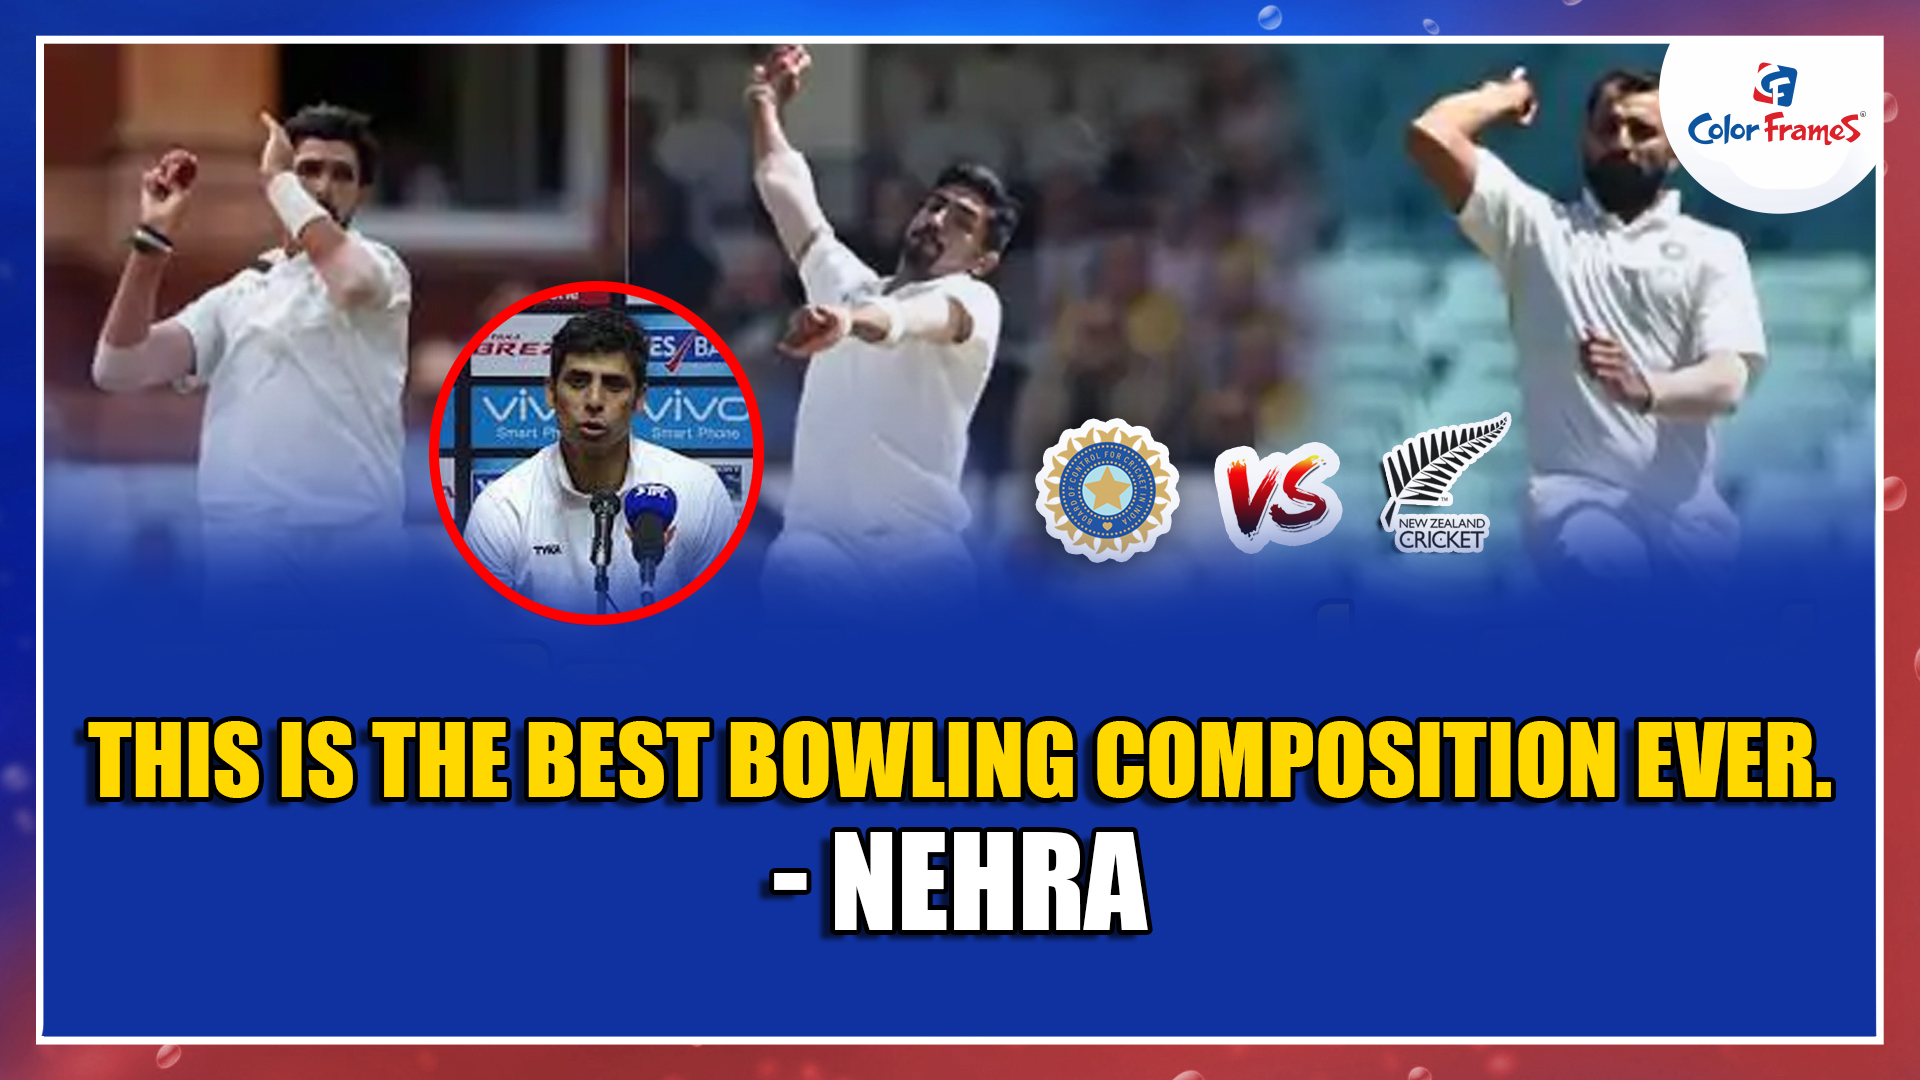 This is the Best Bowling Composition ever. - Nehra